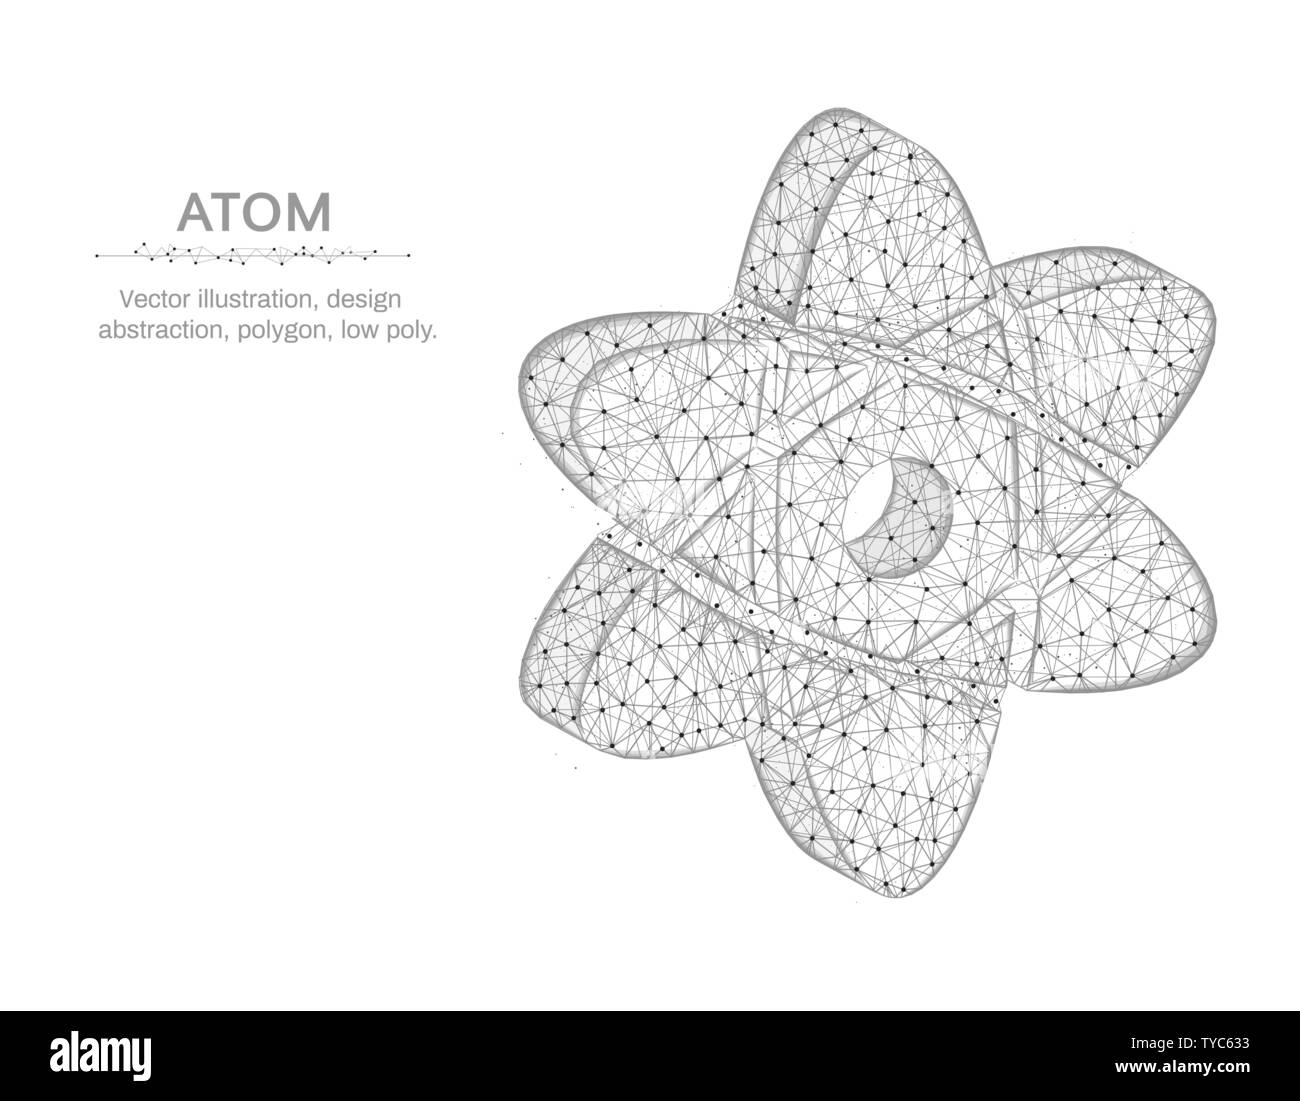 atom low poly design, science in polygonal style, chemistry and physics wire  frame vector illustration on white background stock vector image & art -  alamy  alamy